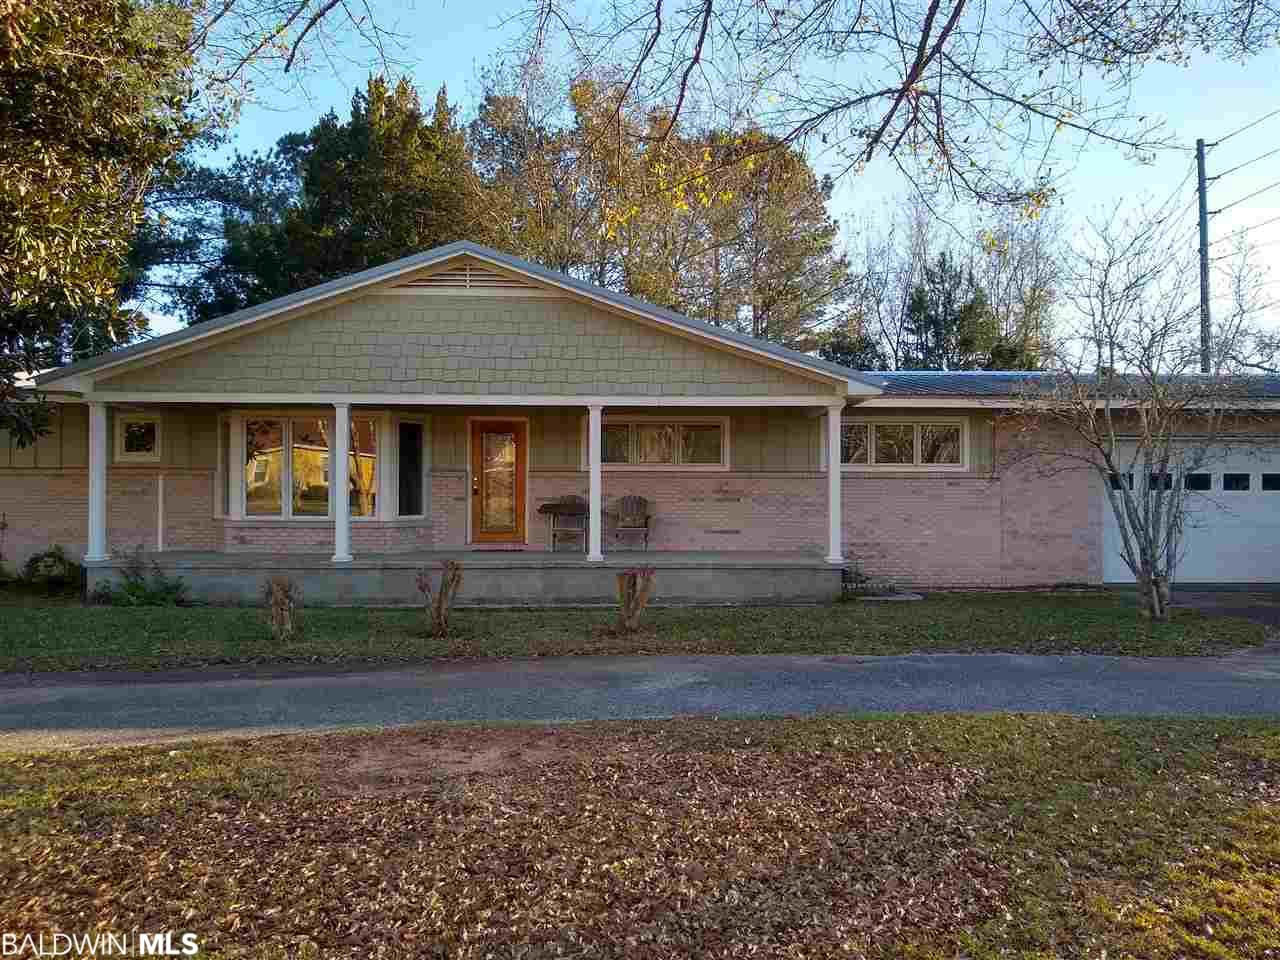 16020 2nd Avenue, Silverhill, AL 36576